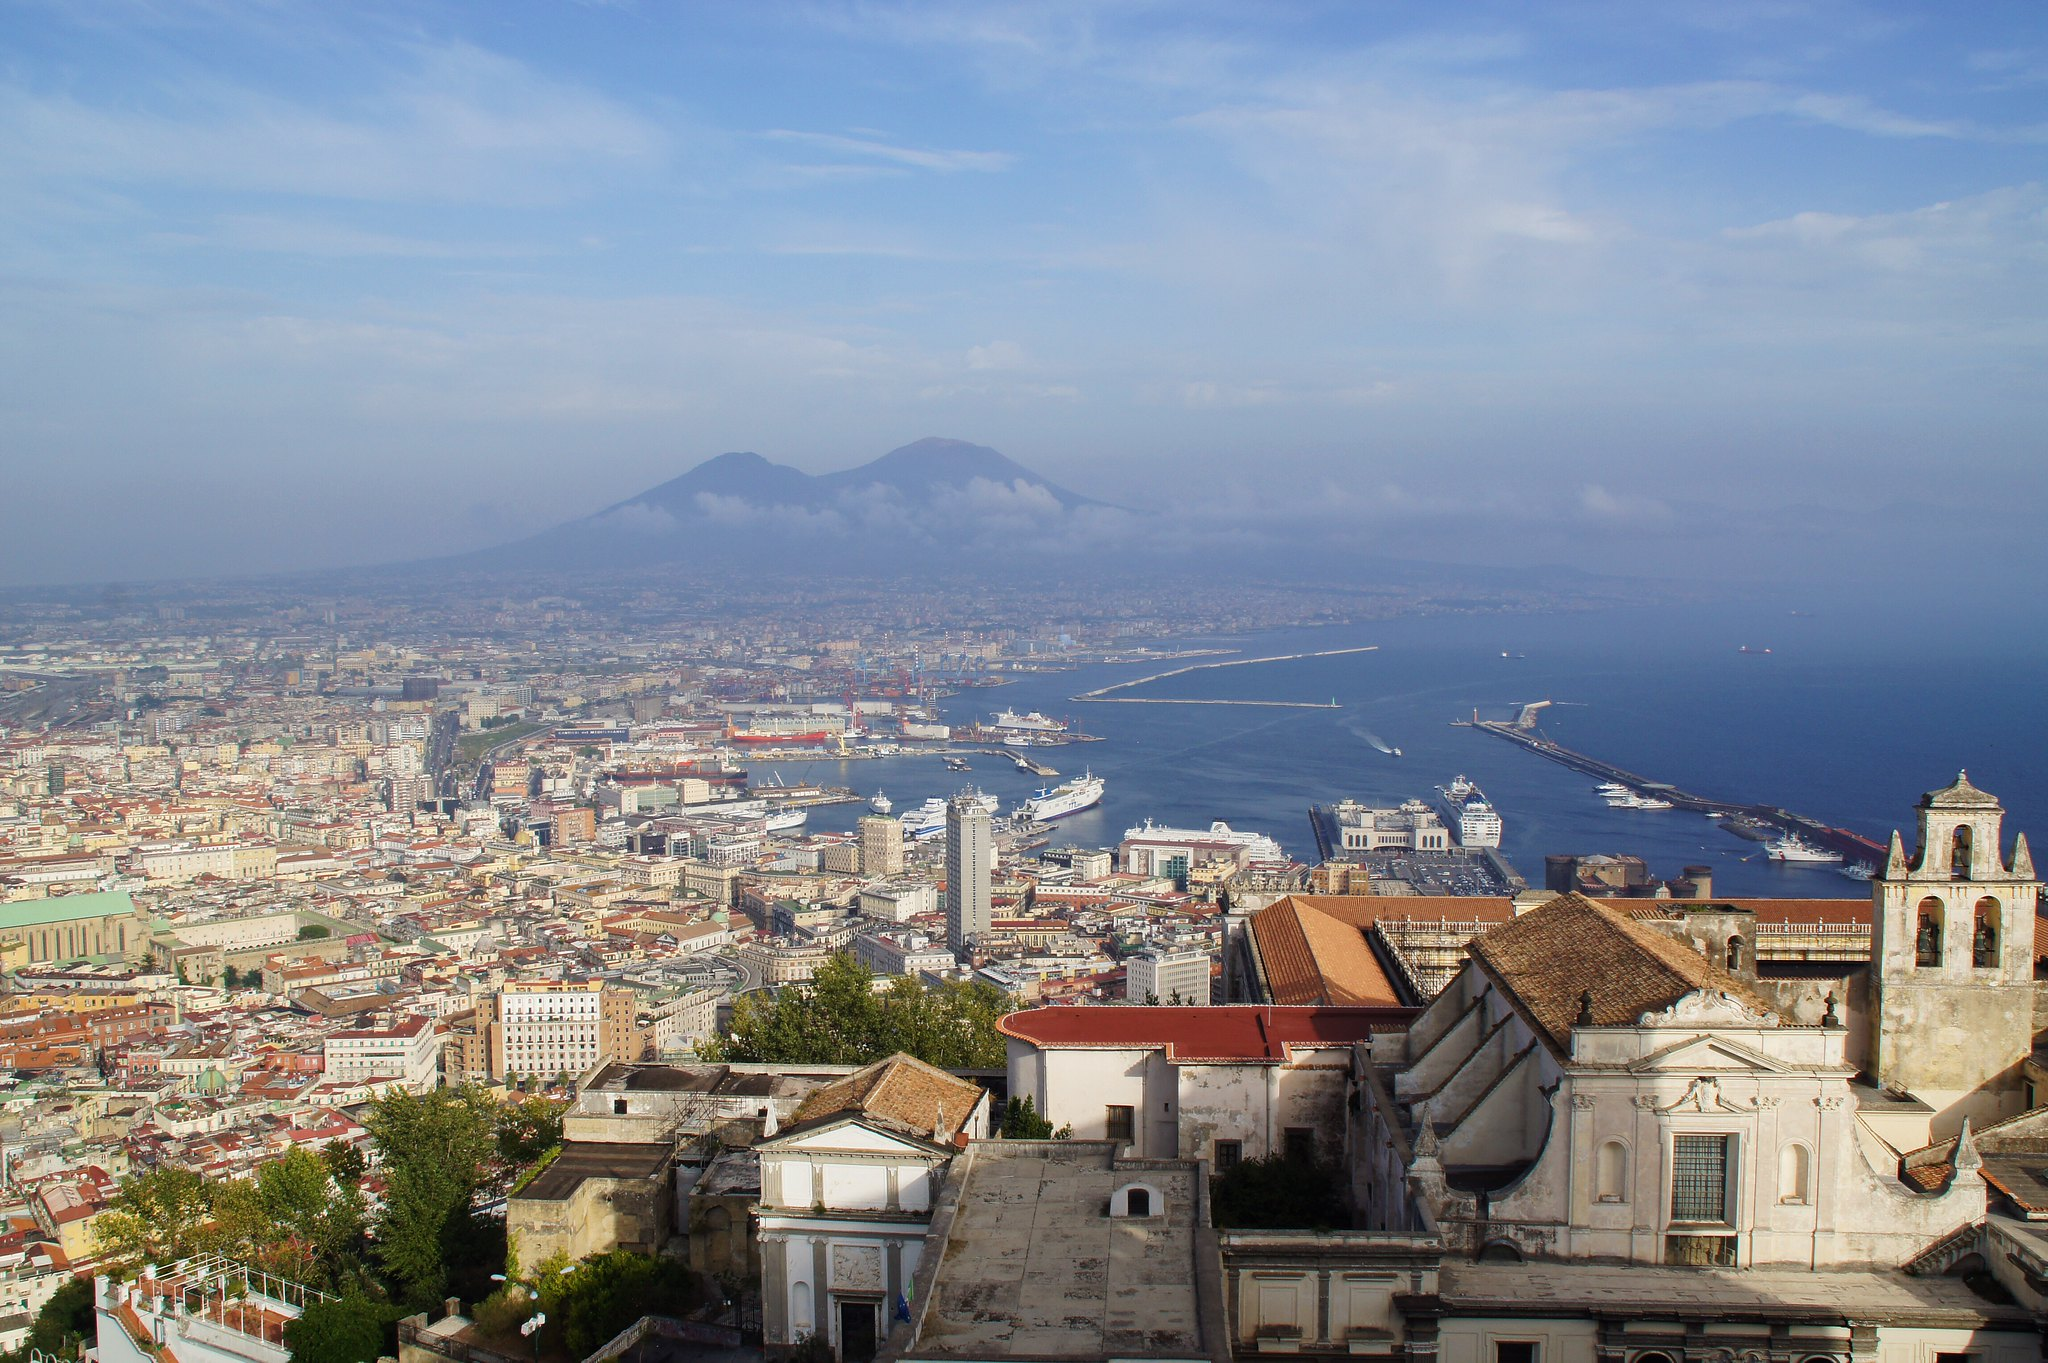 View from Saint Elmo Castle with Vesuvius, Naples